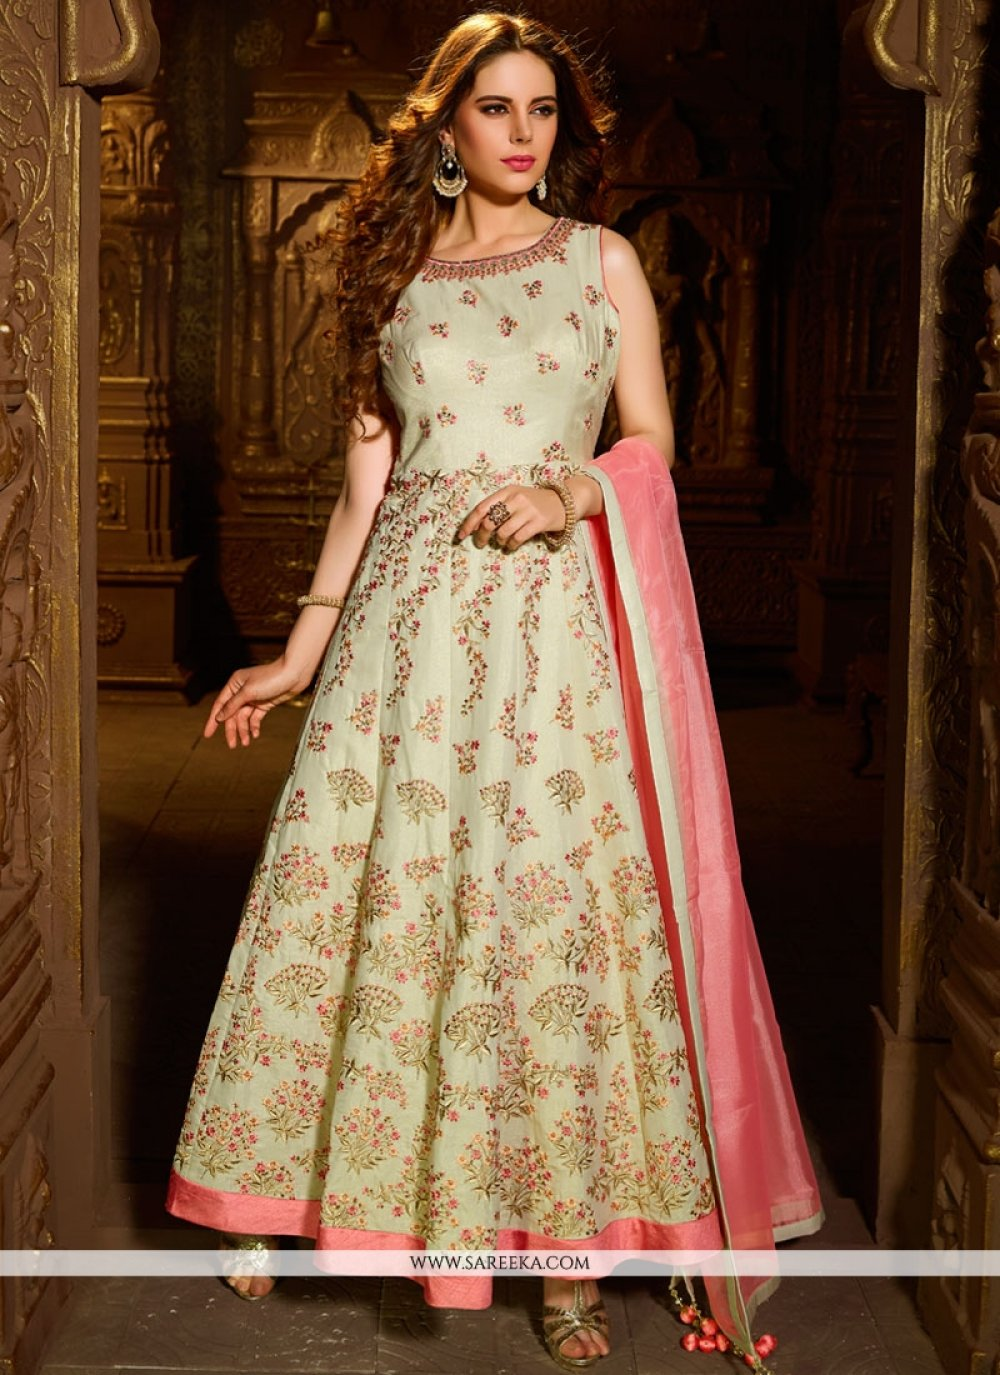 Shimmer Georgette Cream and Pink Resham Work Readymade Suit